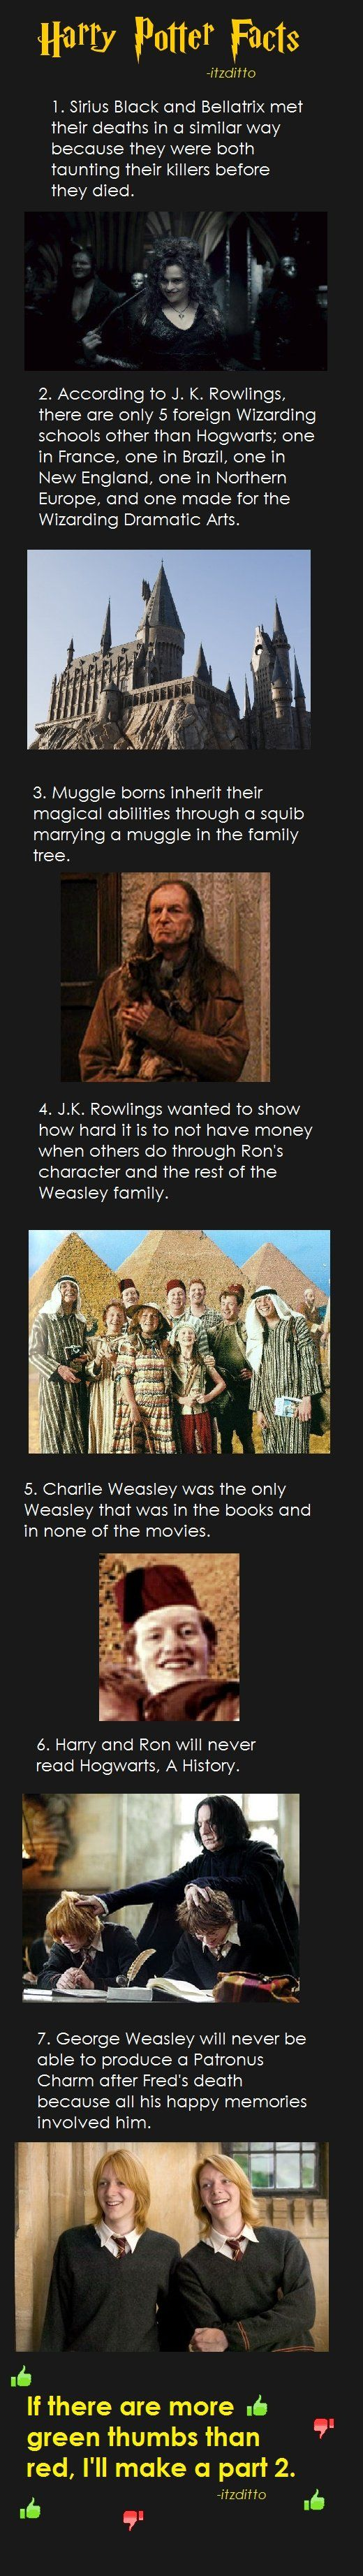 Harry Potter Facts Part 1 For Those Looking Harry Potter Fakten Harry Potter Harry Potter Bilder